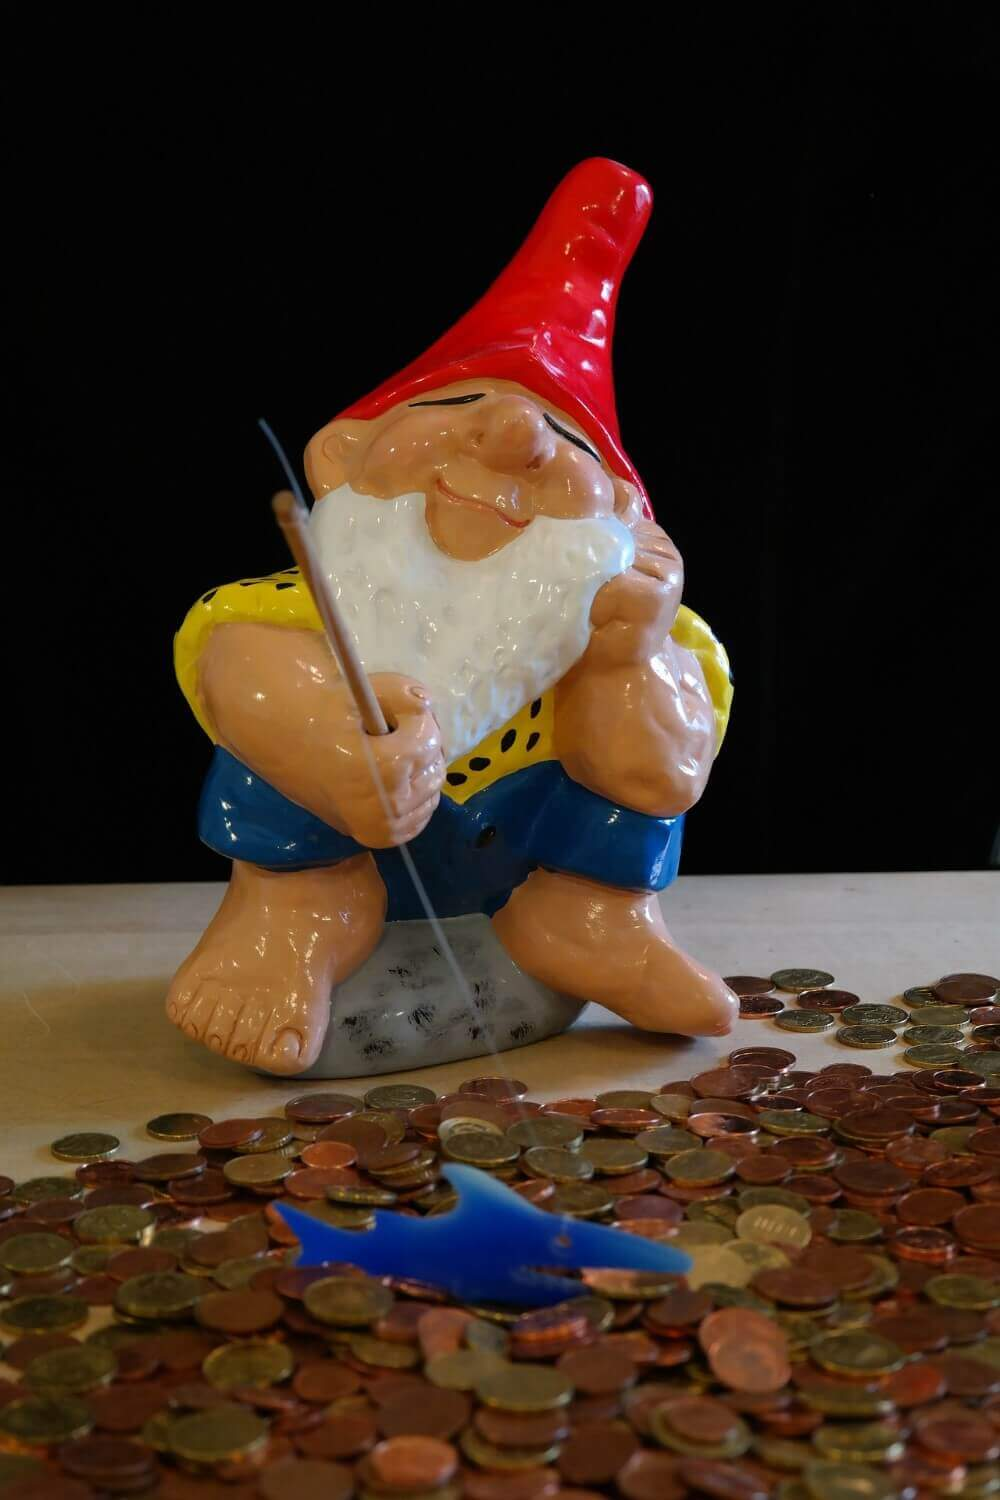 a model of an old man with some coins